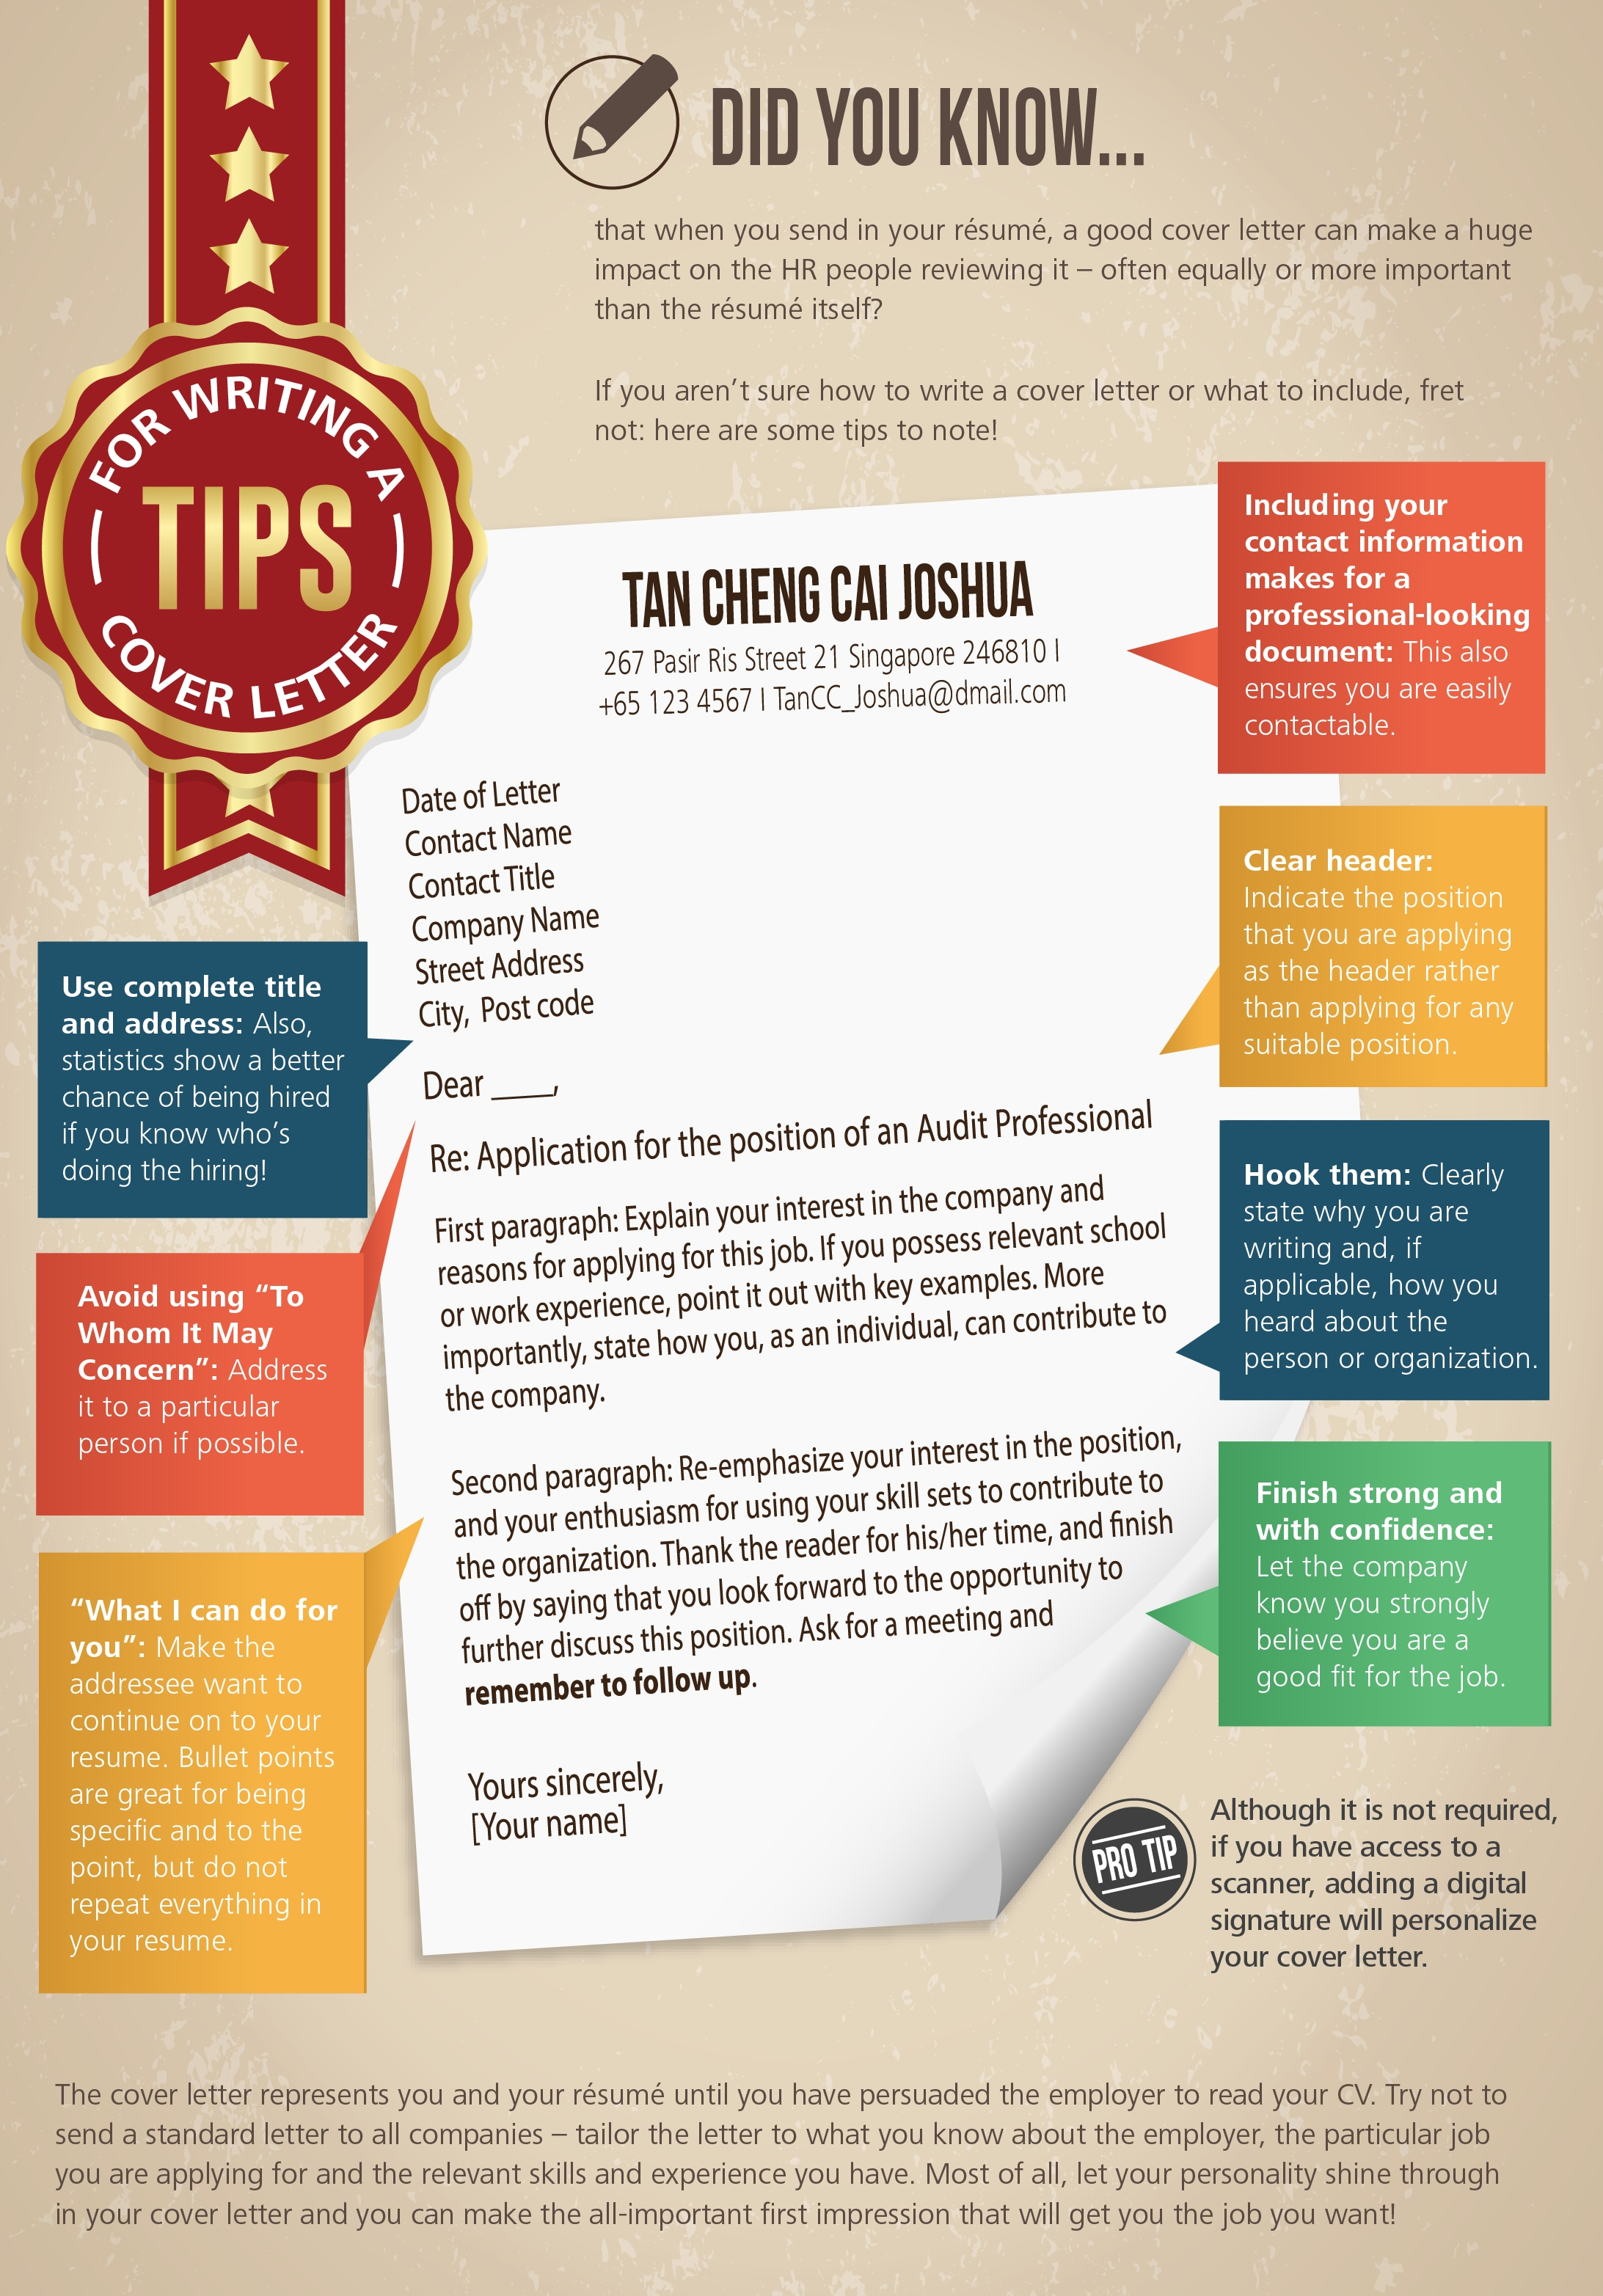 Tips For Writing A Cover Letter  How To Write Cover Letter For Job Application